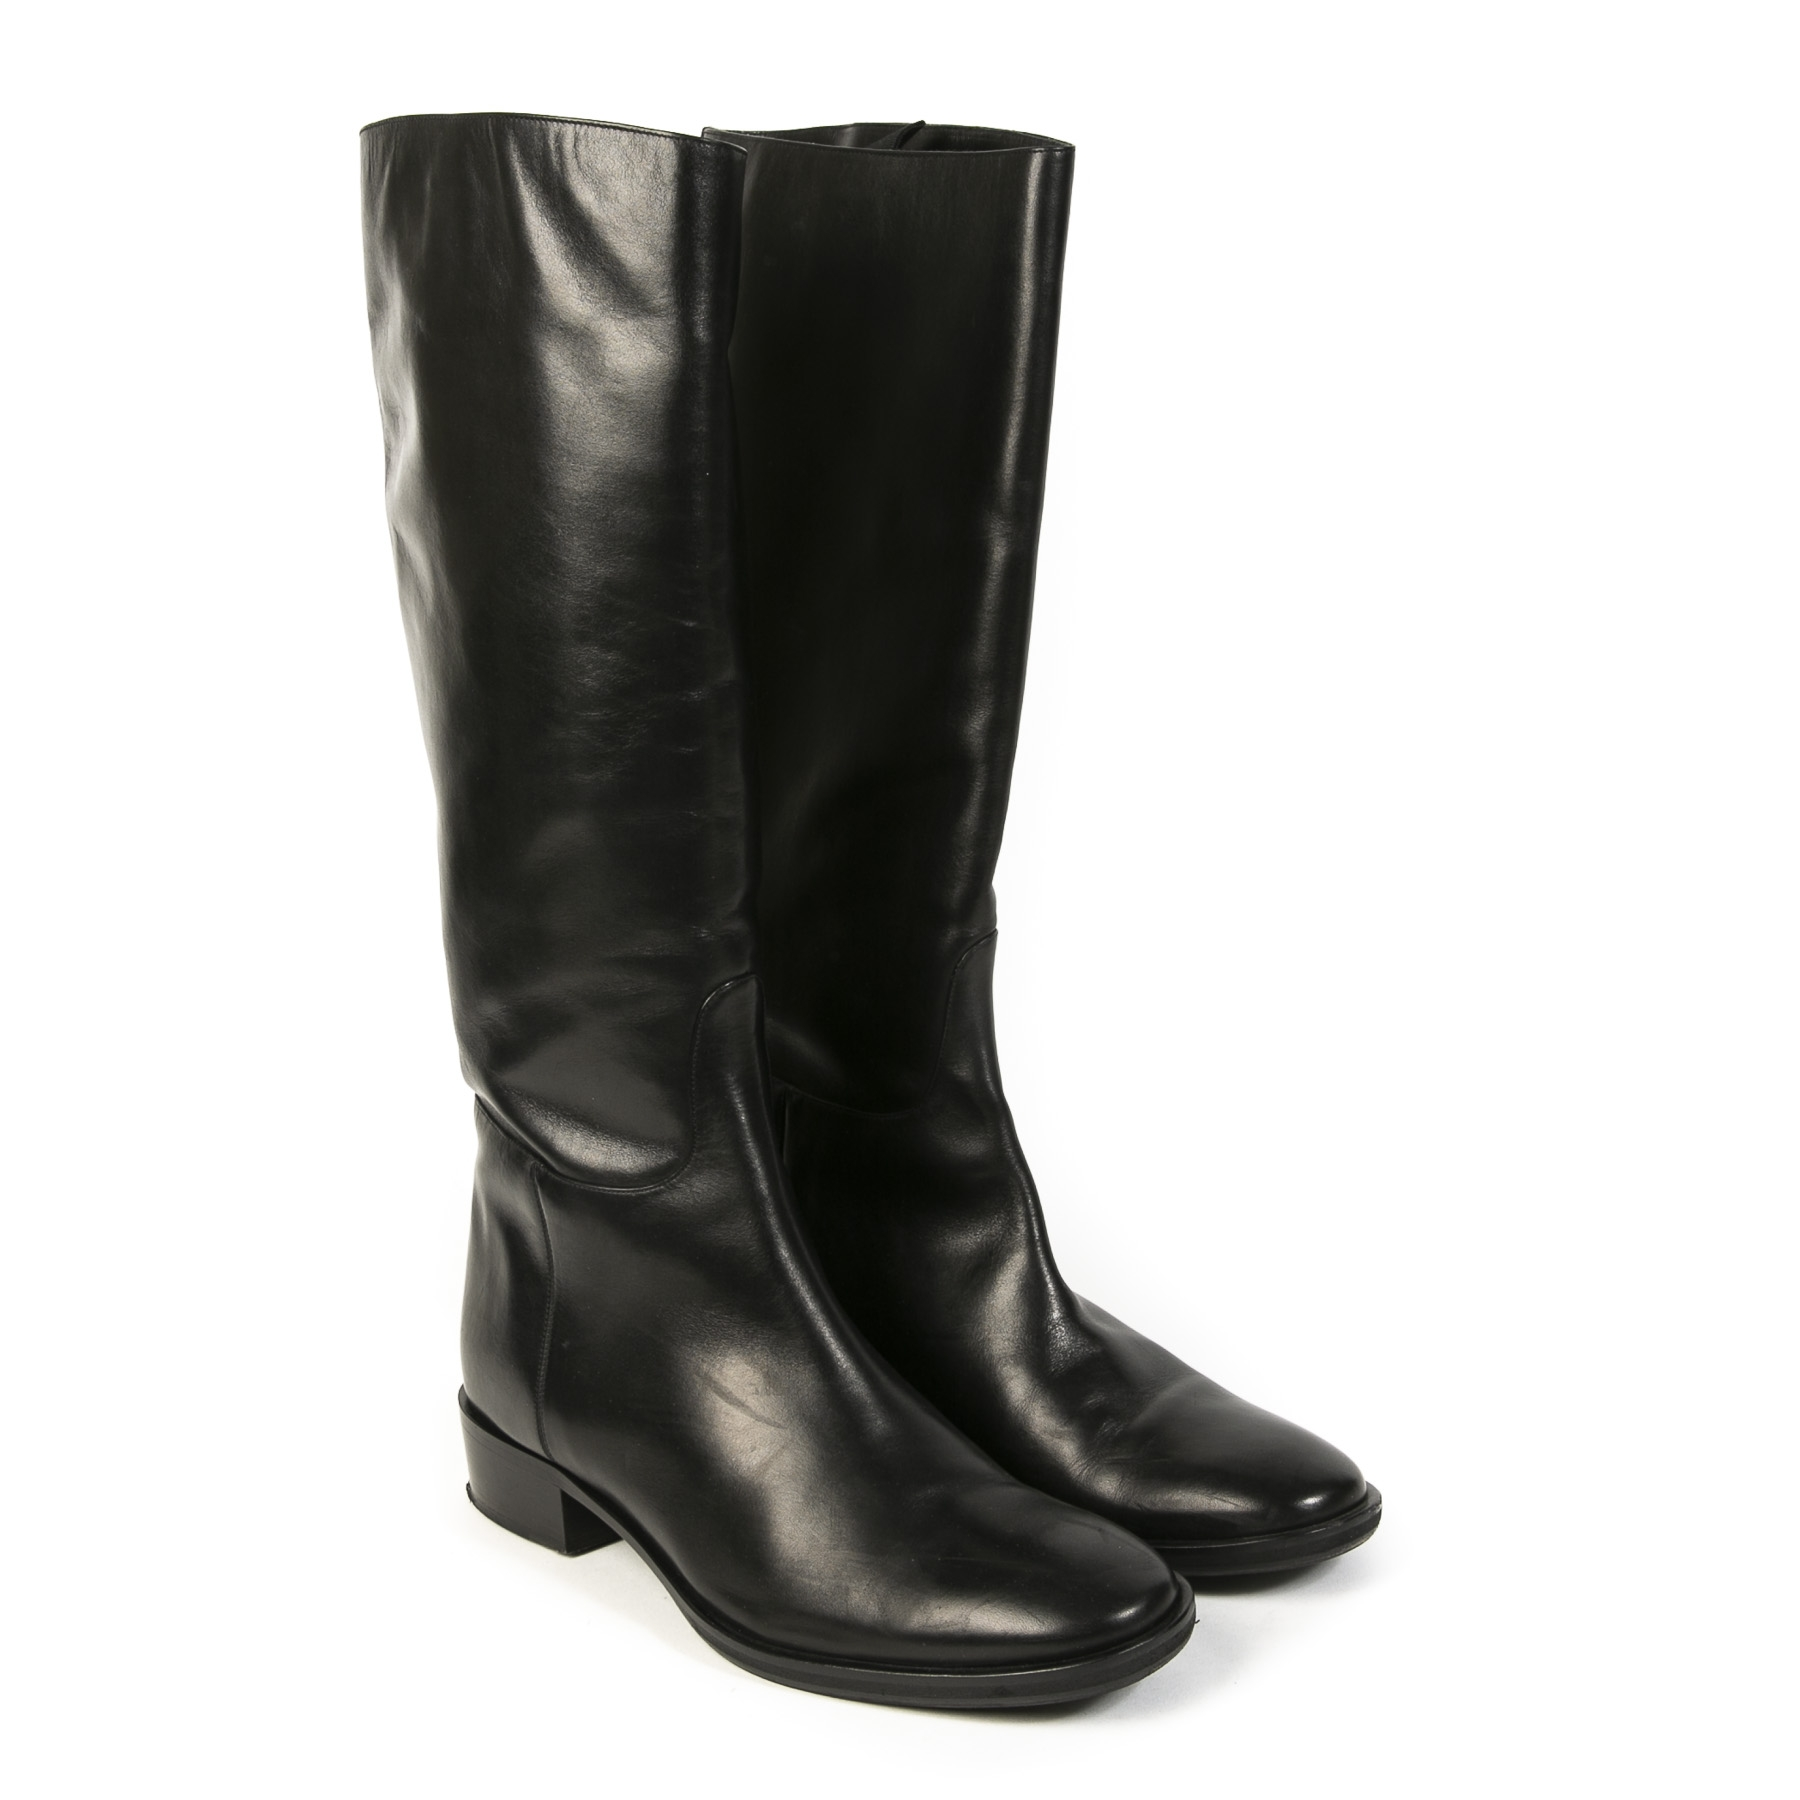 Authentieke tweedehands vintage Max Mara Knee-High Leather Boots koop online webshop LabelLOV